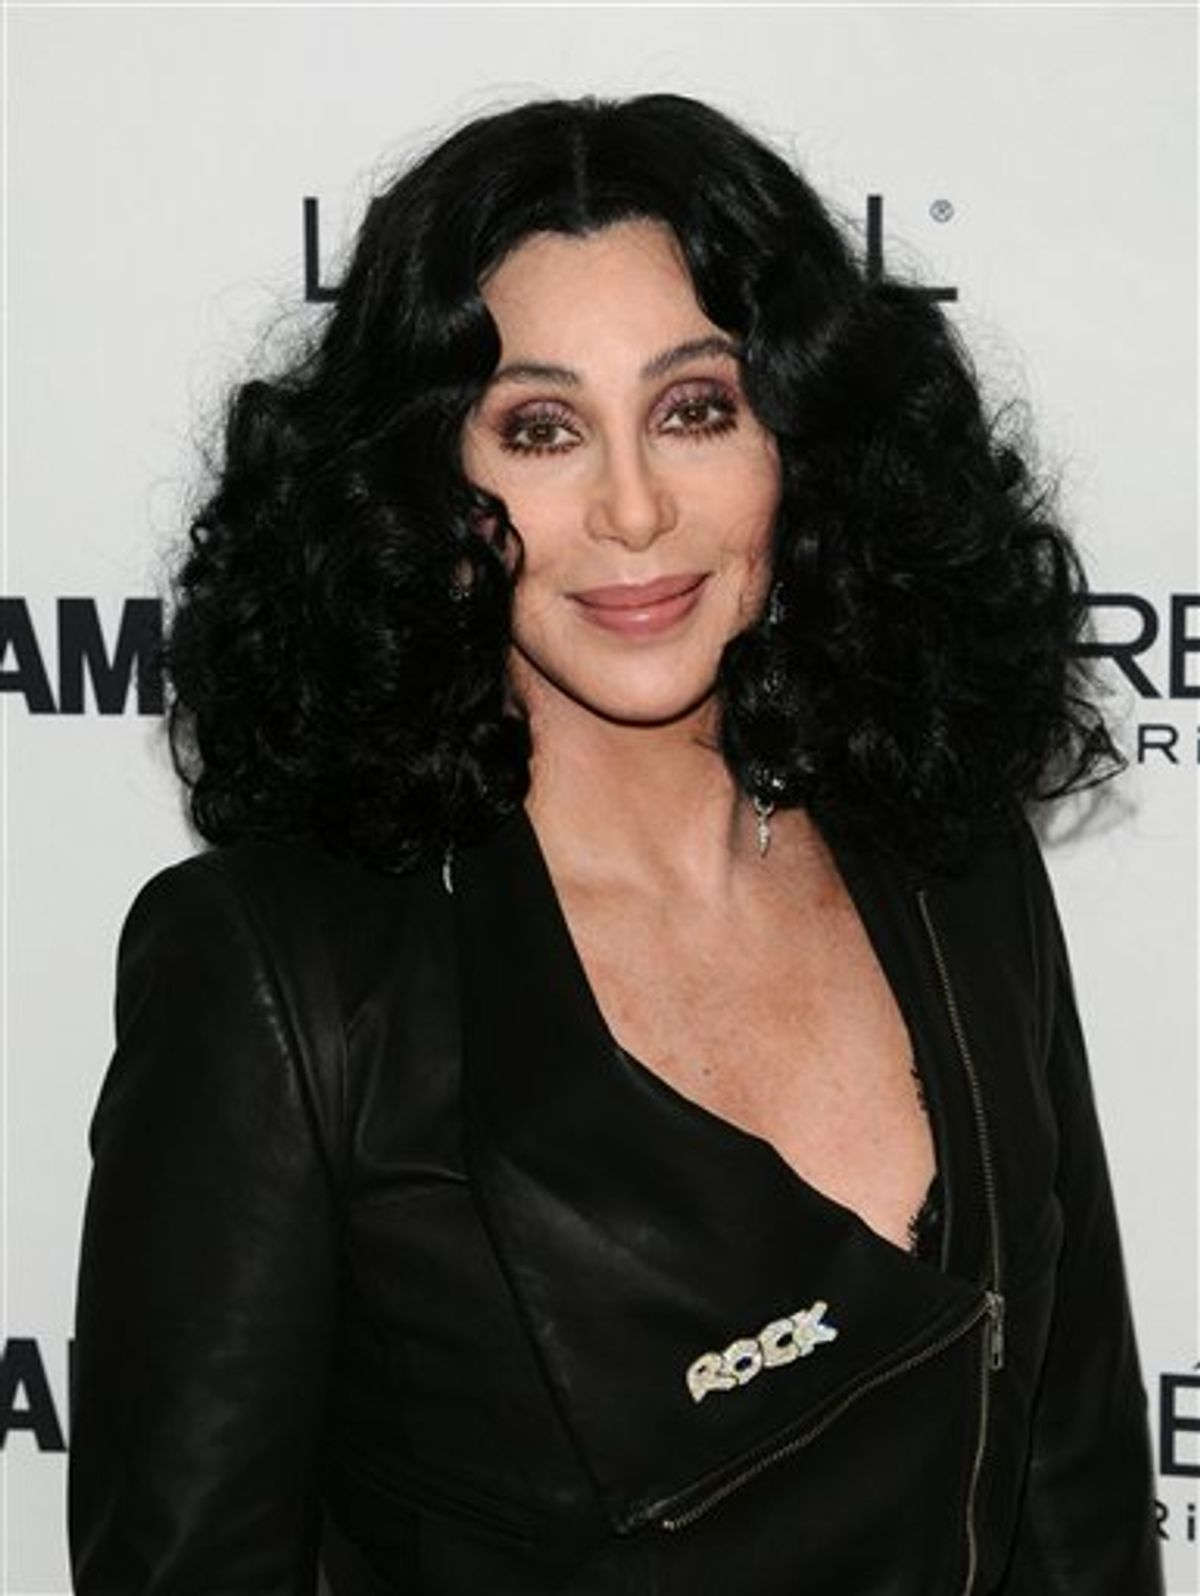 Singer Cher attends the 20th annual Glamour Women of the Year Awards at Carnegie Hall in New York, on Monday, Nov. 8, 2010. (AP Photo/Peter Kramer) (AP)